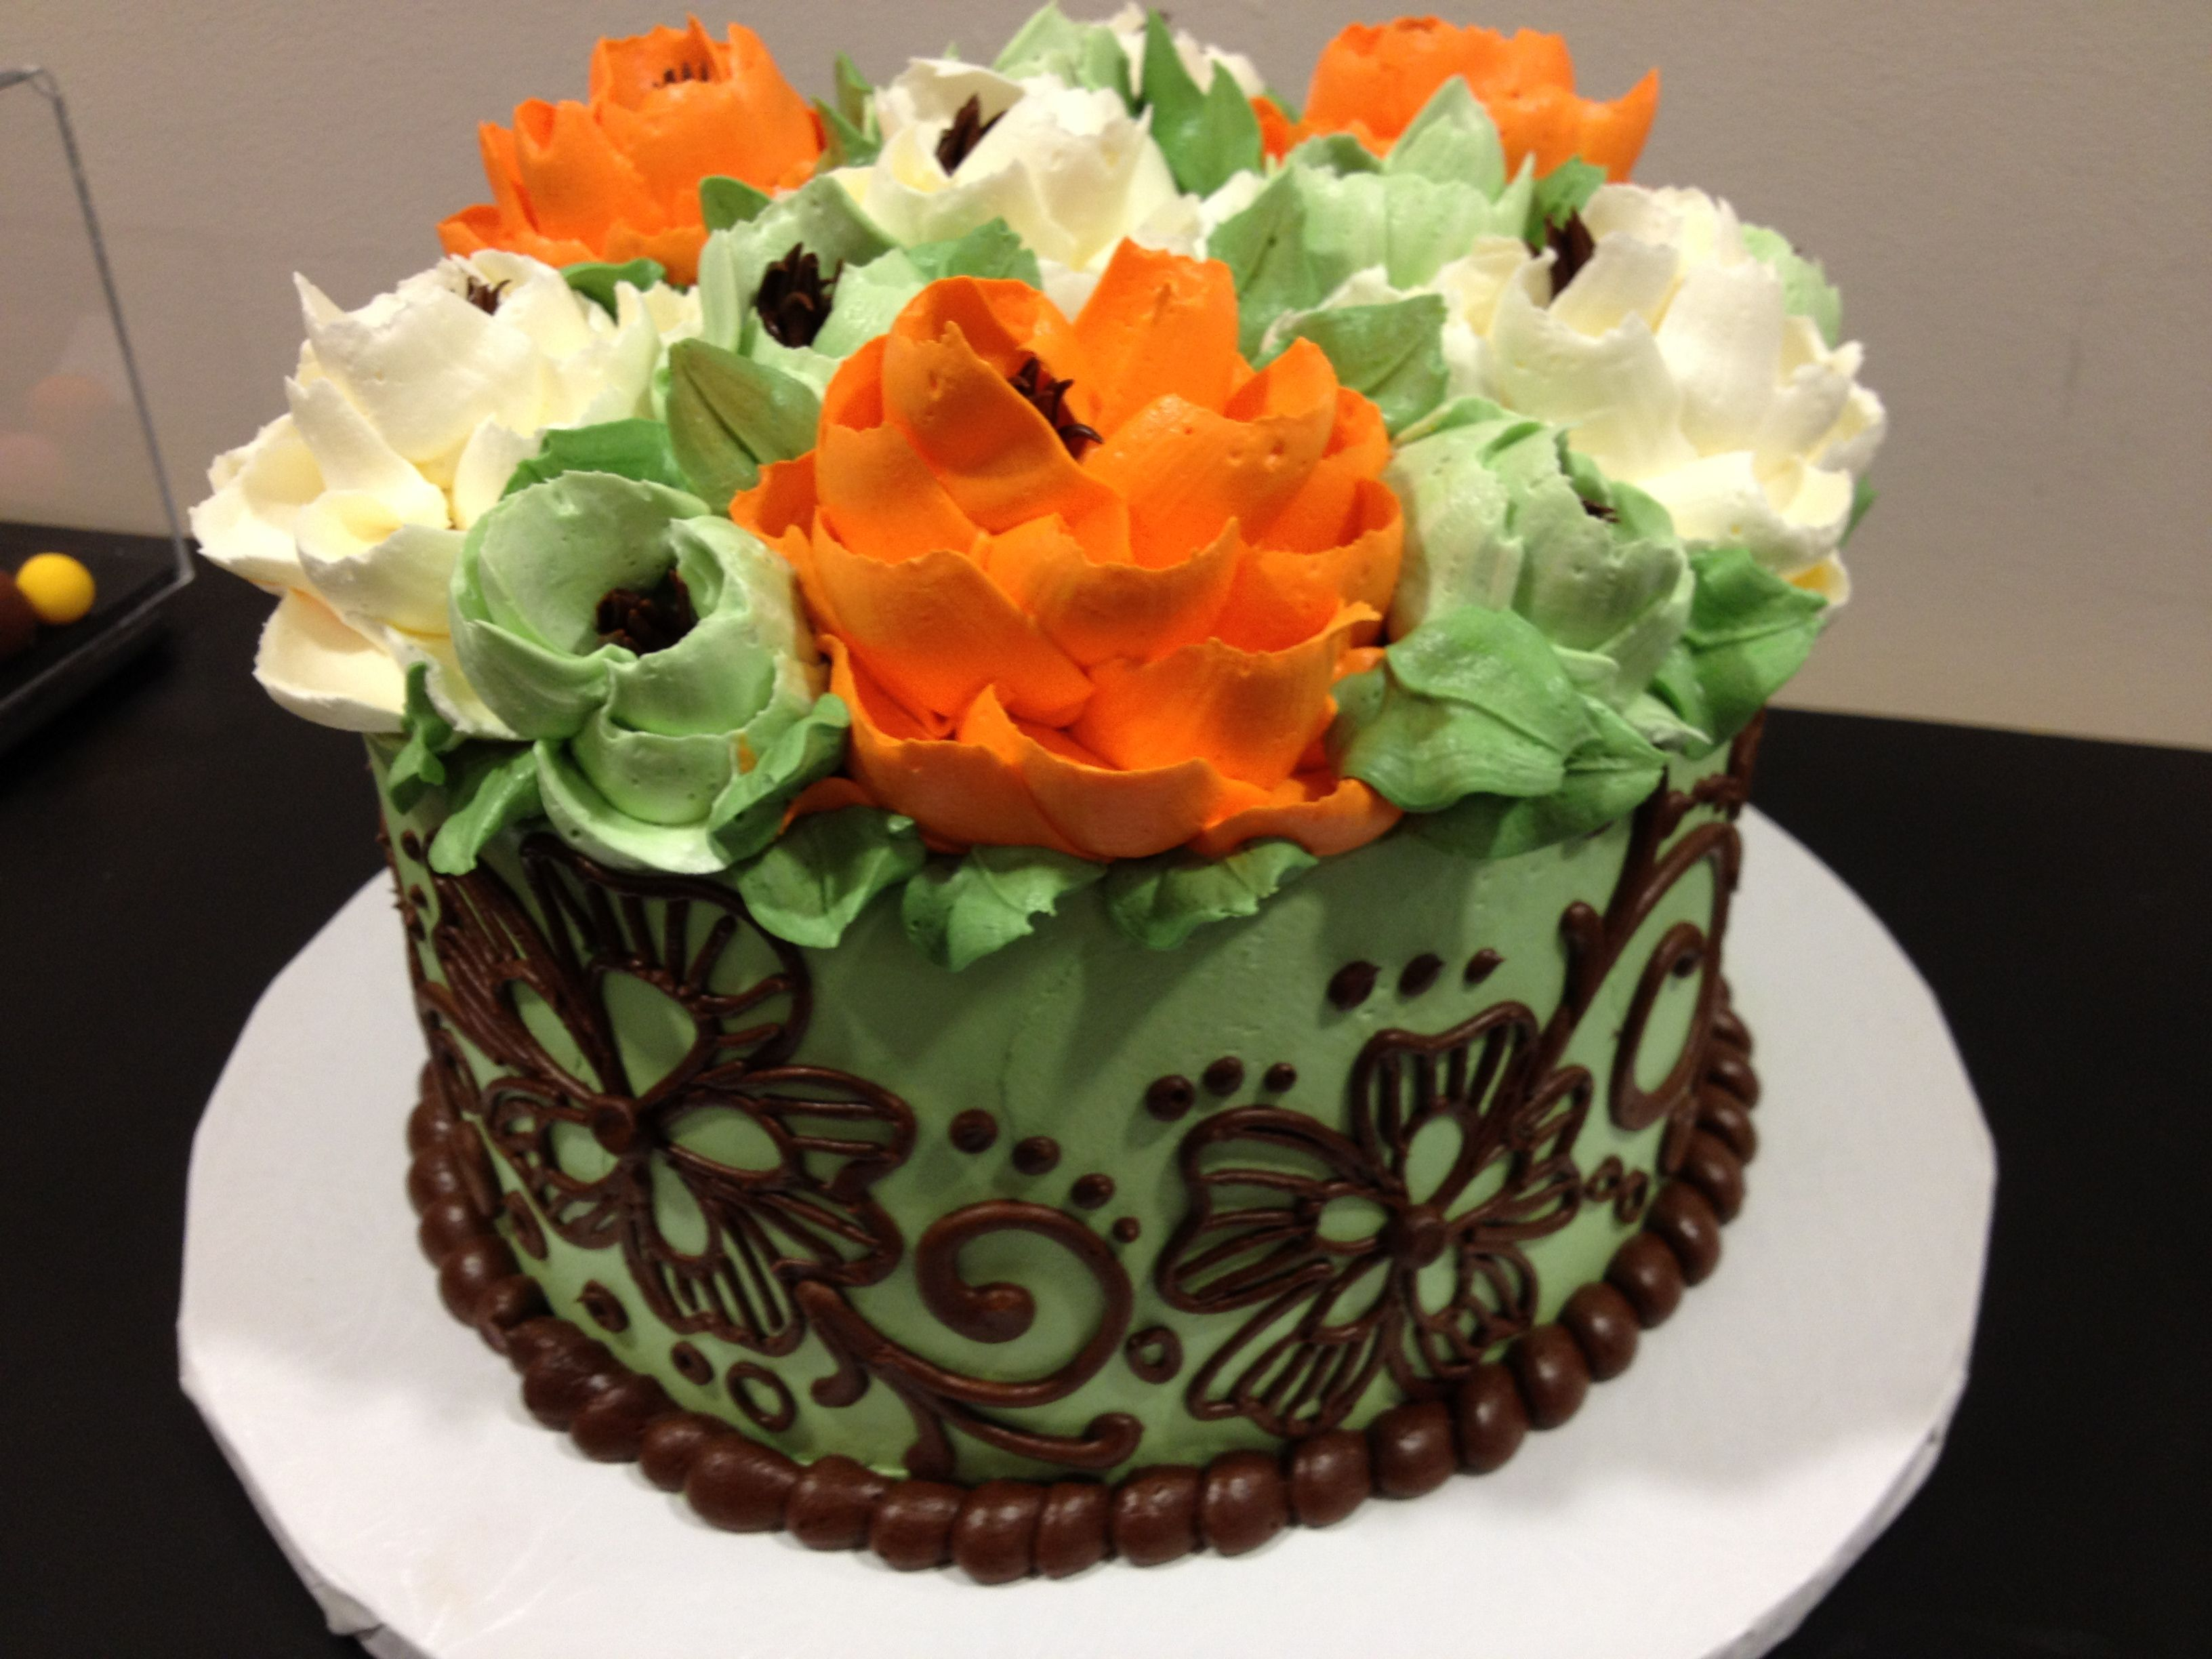 Gorgeous Buttercream Piped Cake By The White Flower Cakes Cakes